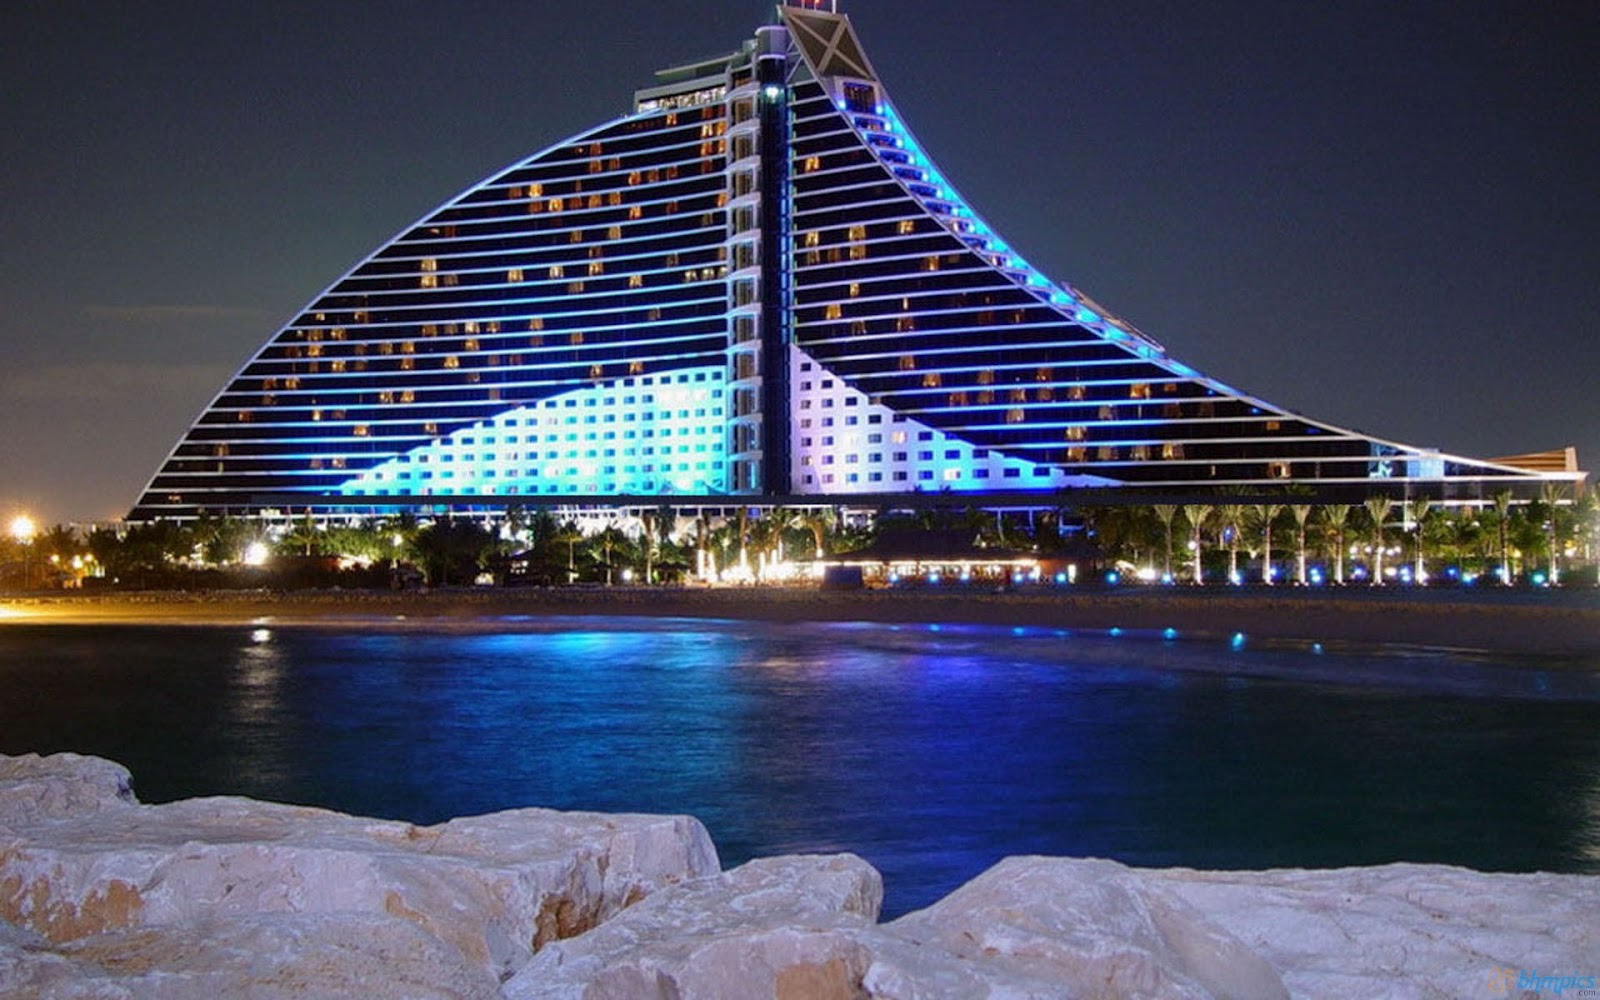 Makkhi Movie Hd Wallpaper Free Best Pictures Jumeirah Beach Hotel At Night Wallpapers